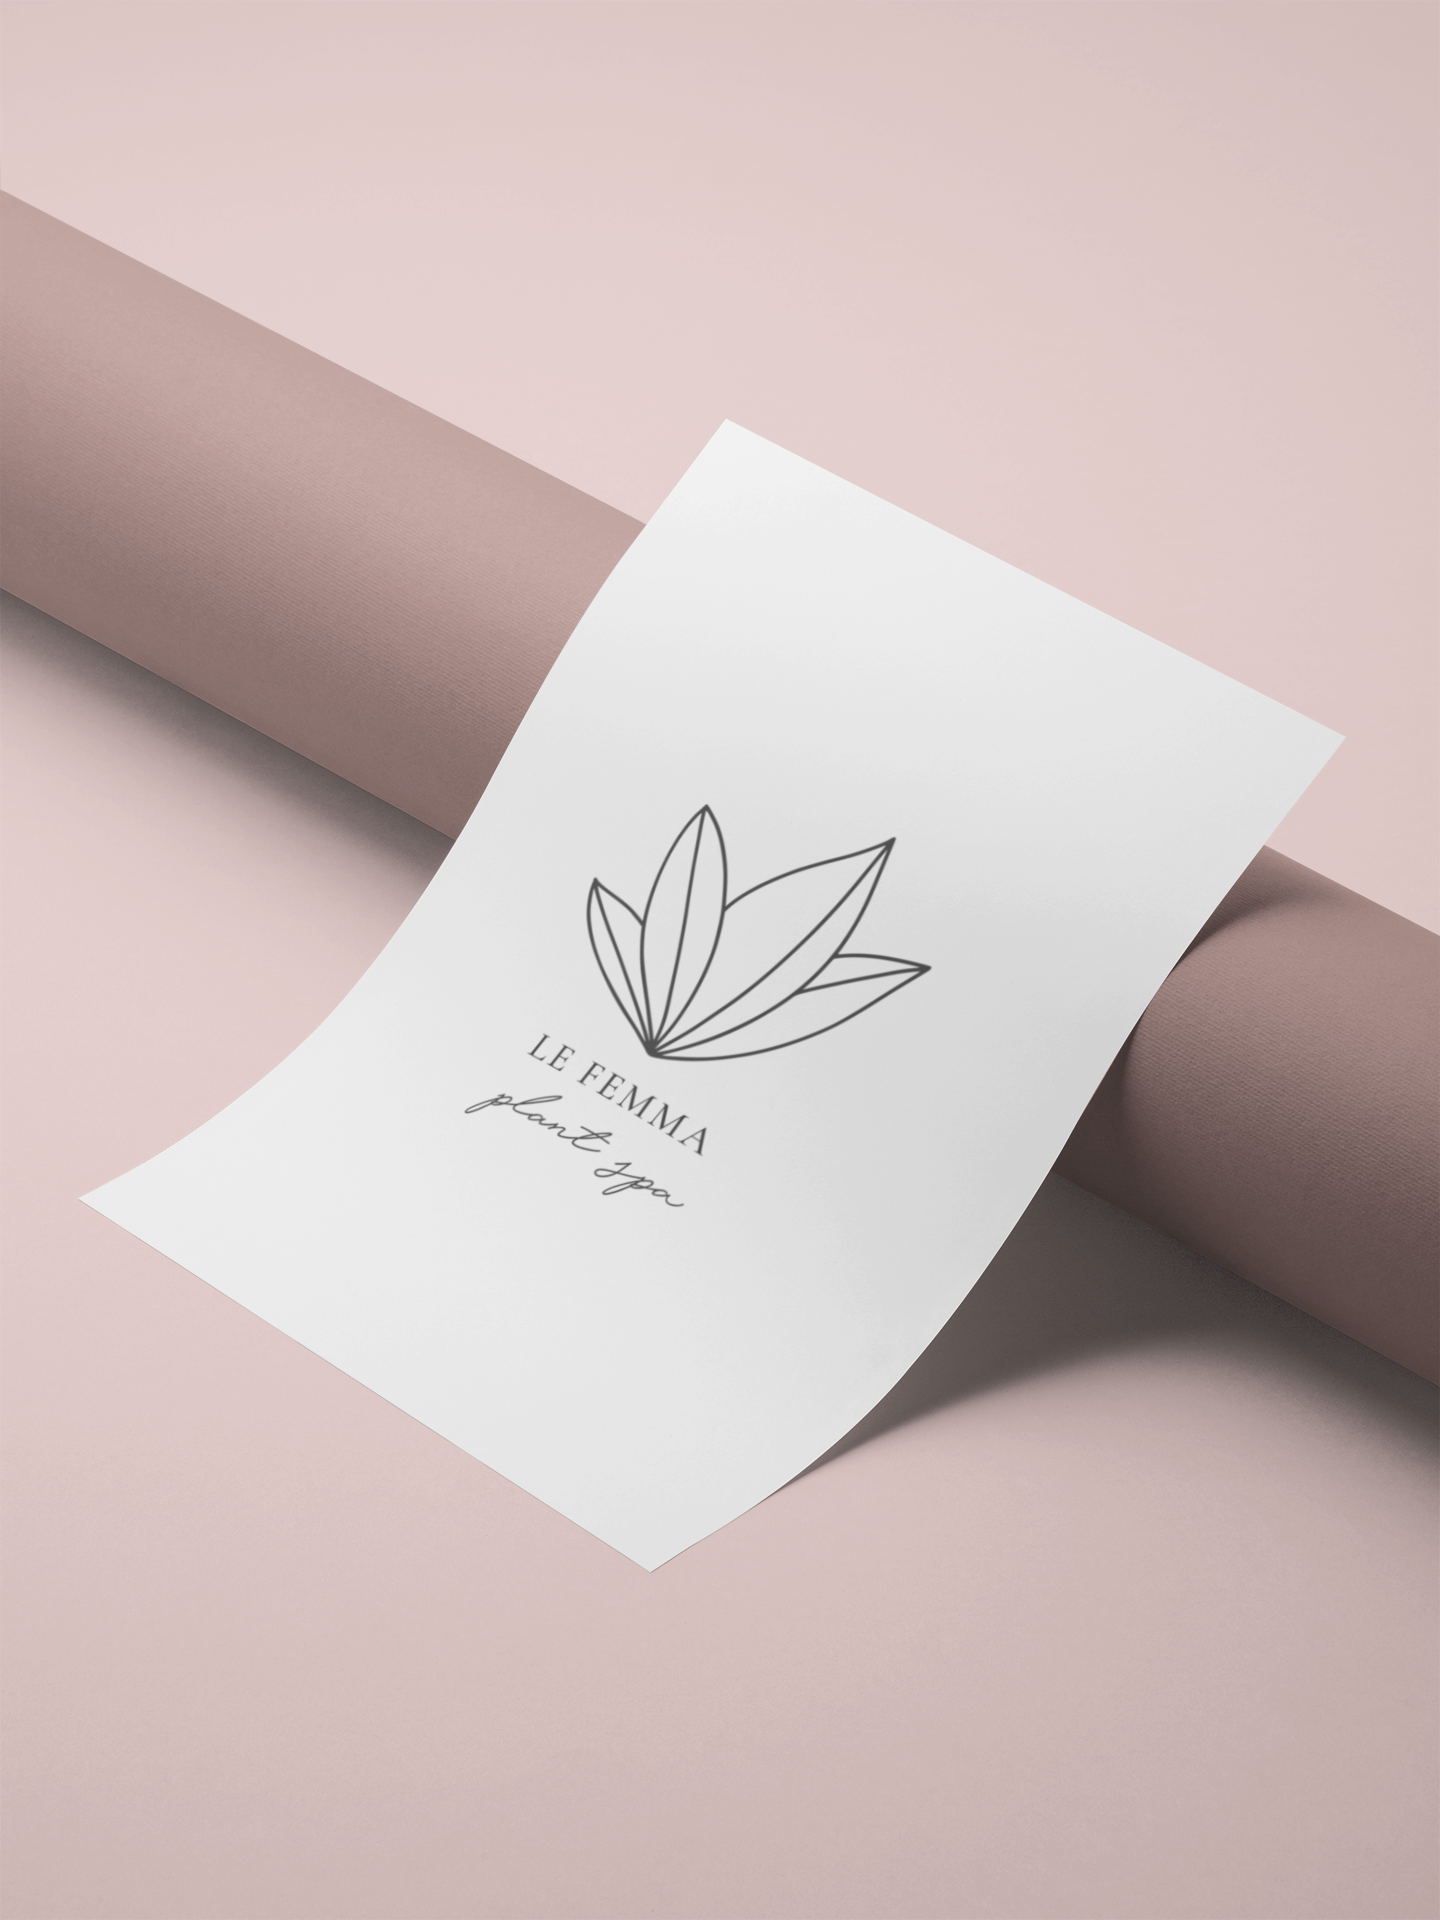 Natural Minimalista is a set of 15 naturalinspired and